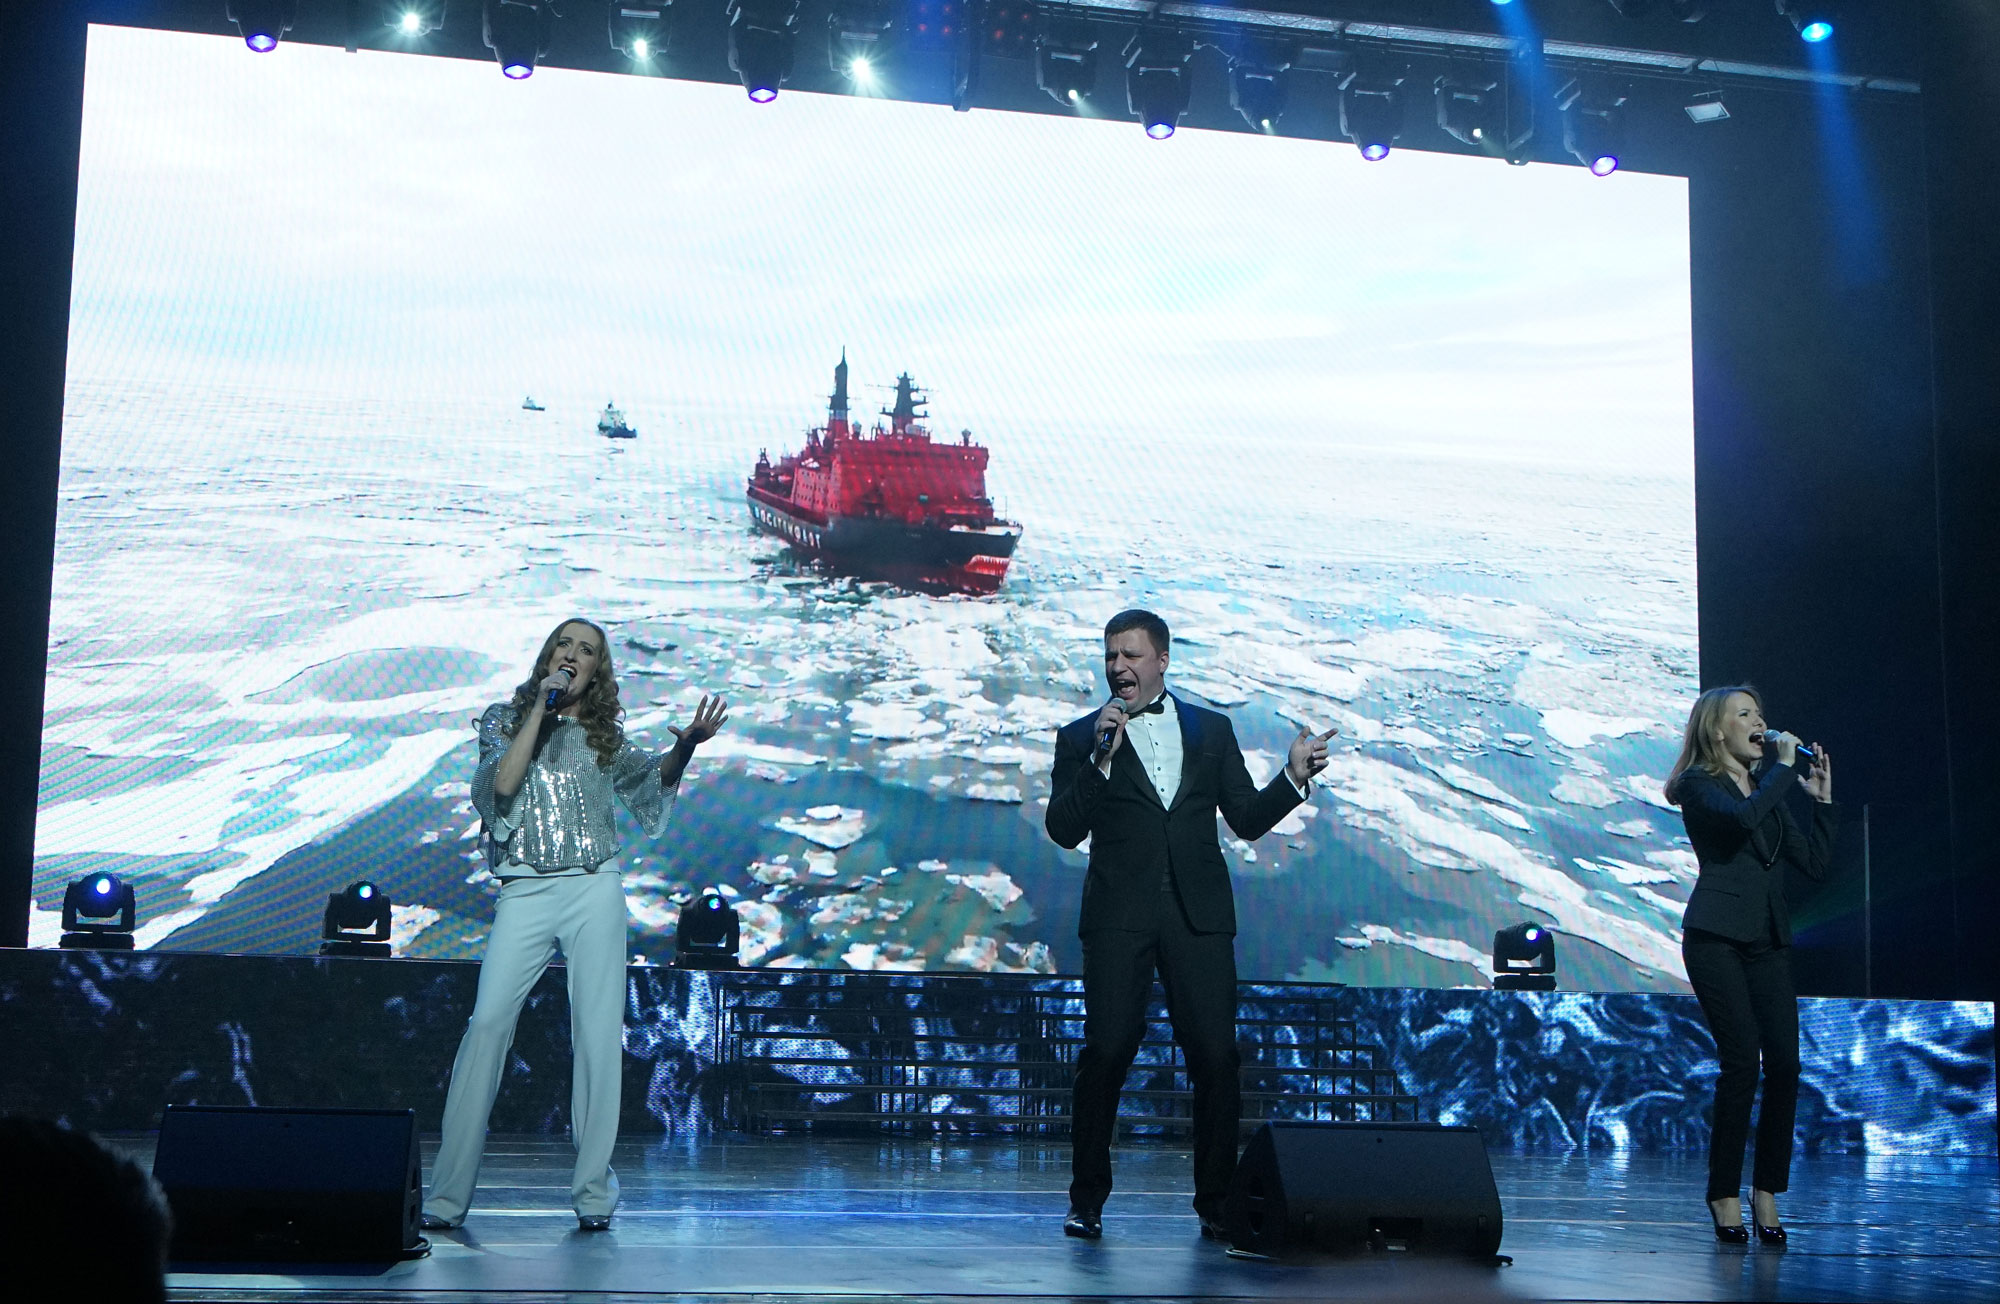 As heat sweeps over the Arctic, Moscow seeks way to adapt